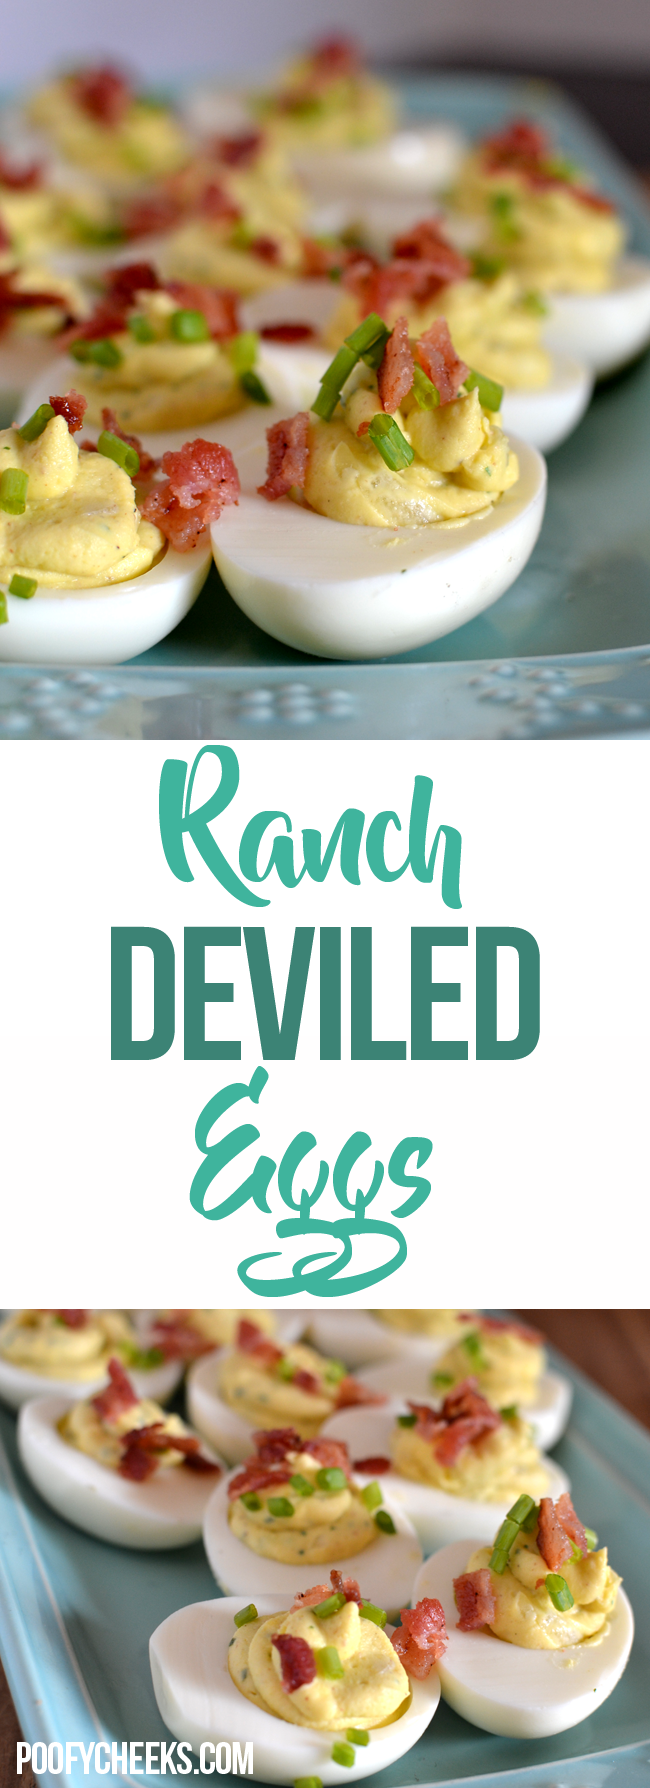 Instant Pot Ranch Deviled Eggs Recipe - Poofy Cheeks